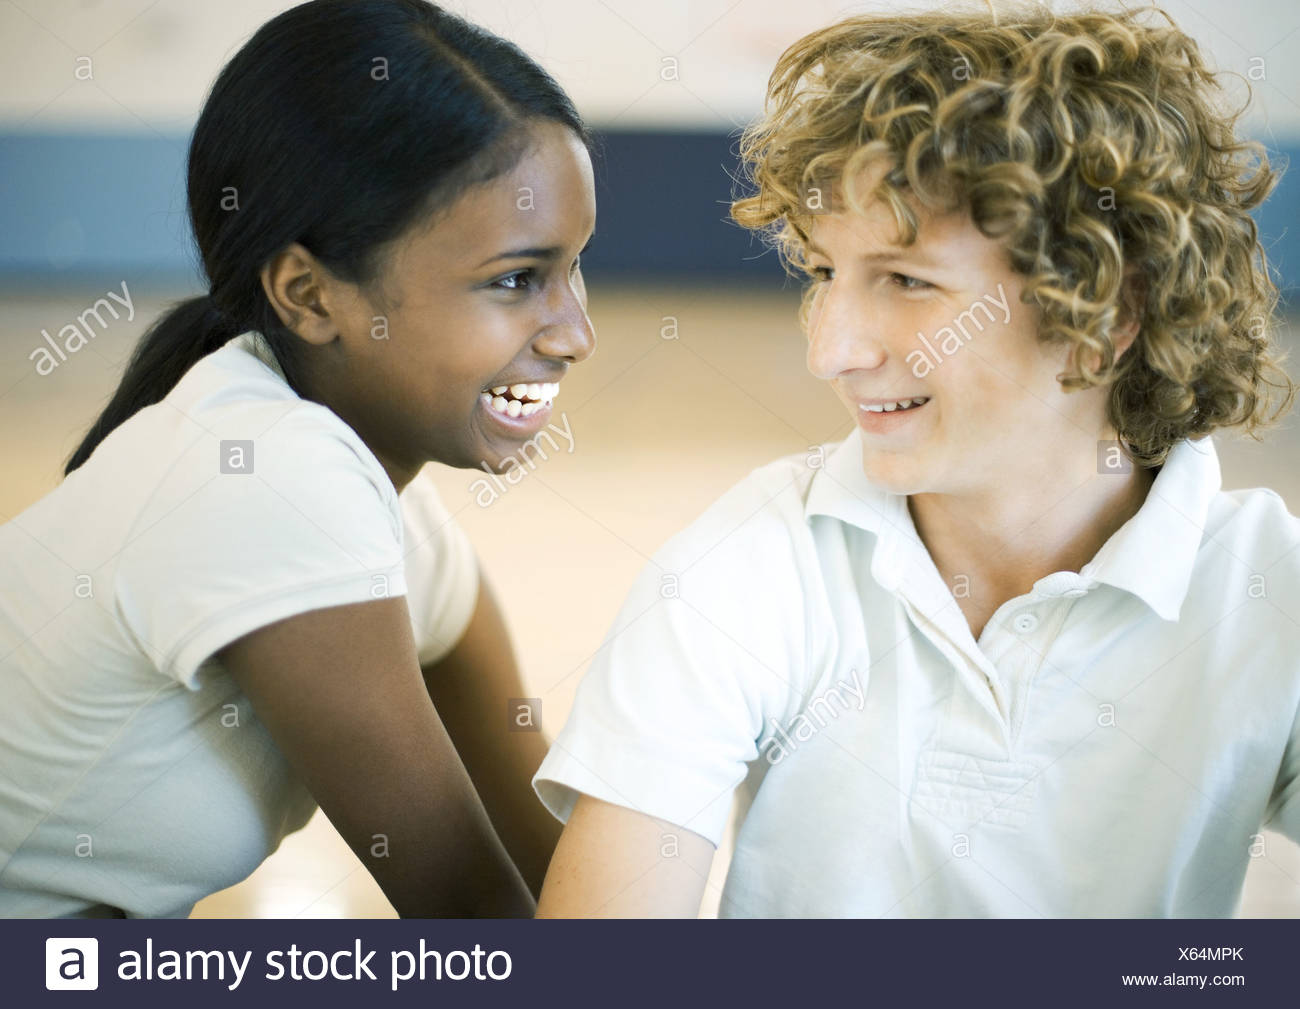 Teen couple smiling at each other - Stock Image